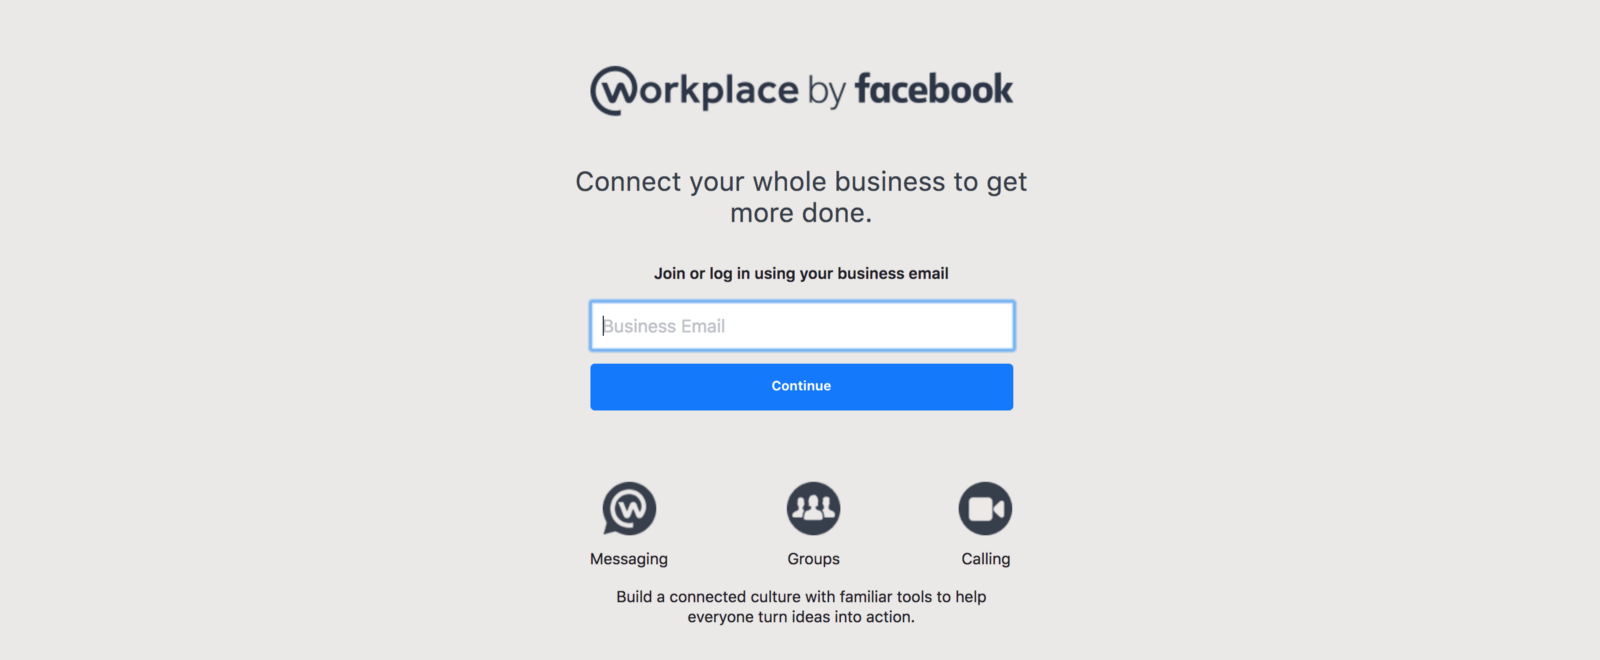 Continue with facebook sign up with email - Facebook Workplace Everyone With An Company Mail Can Join